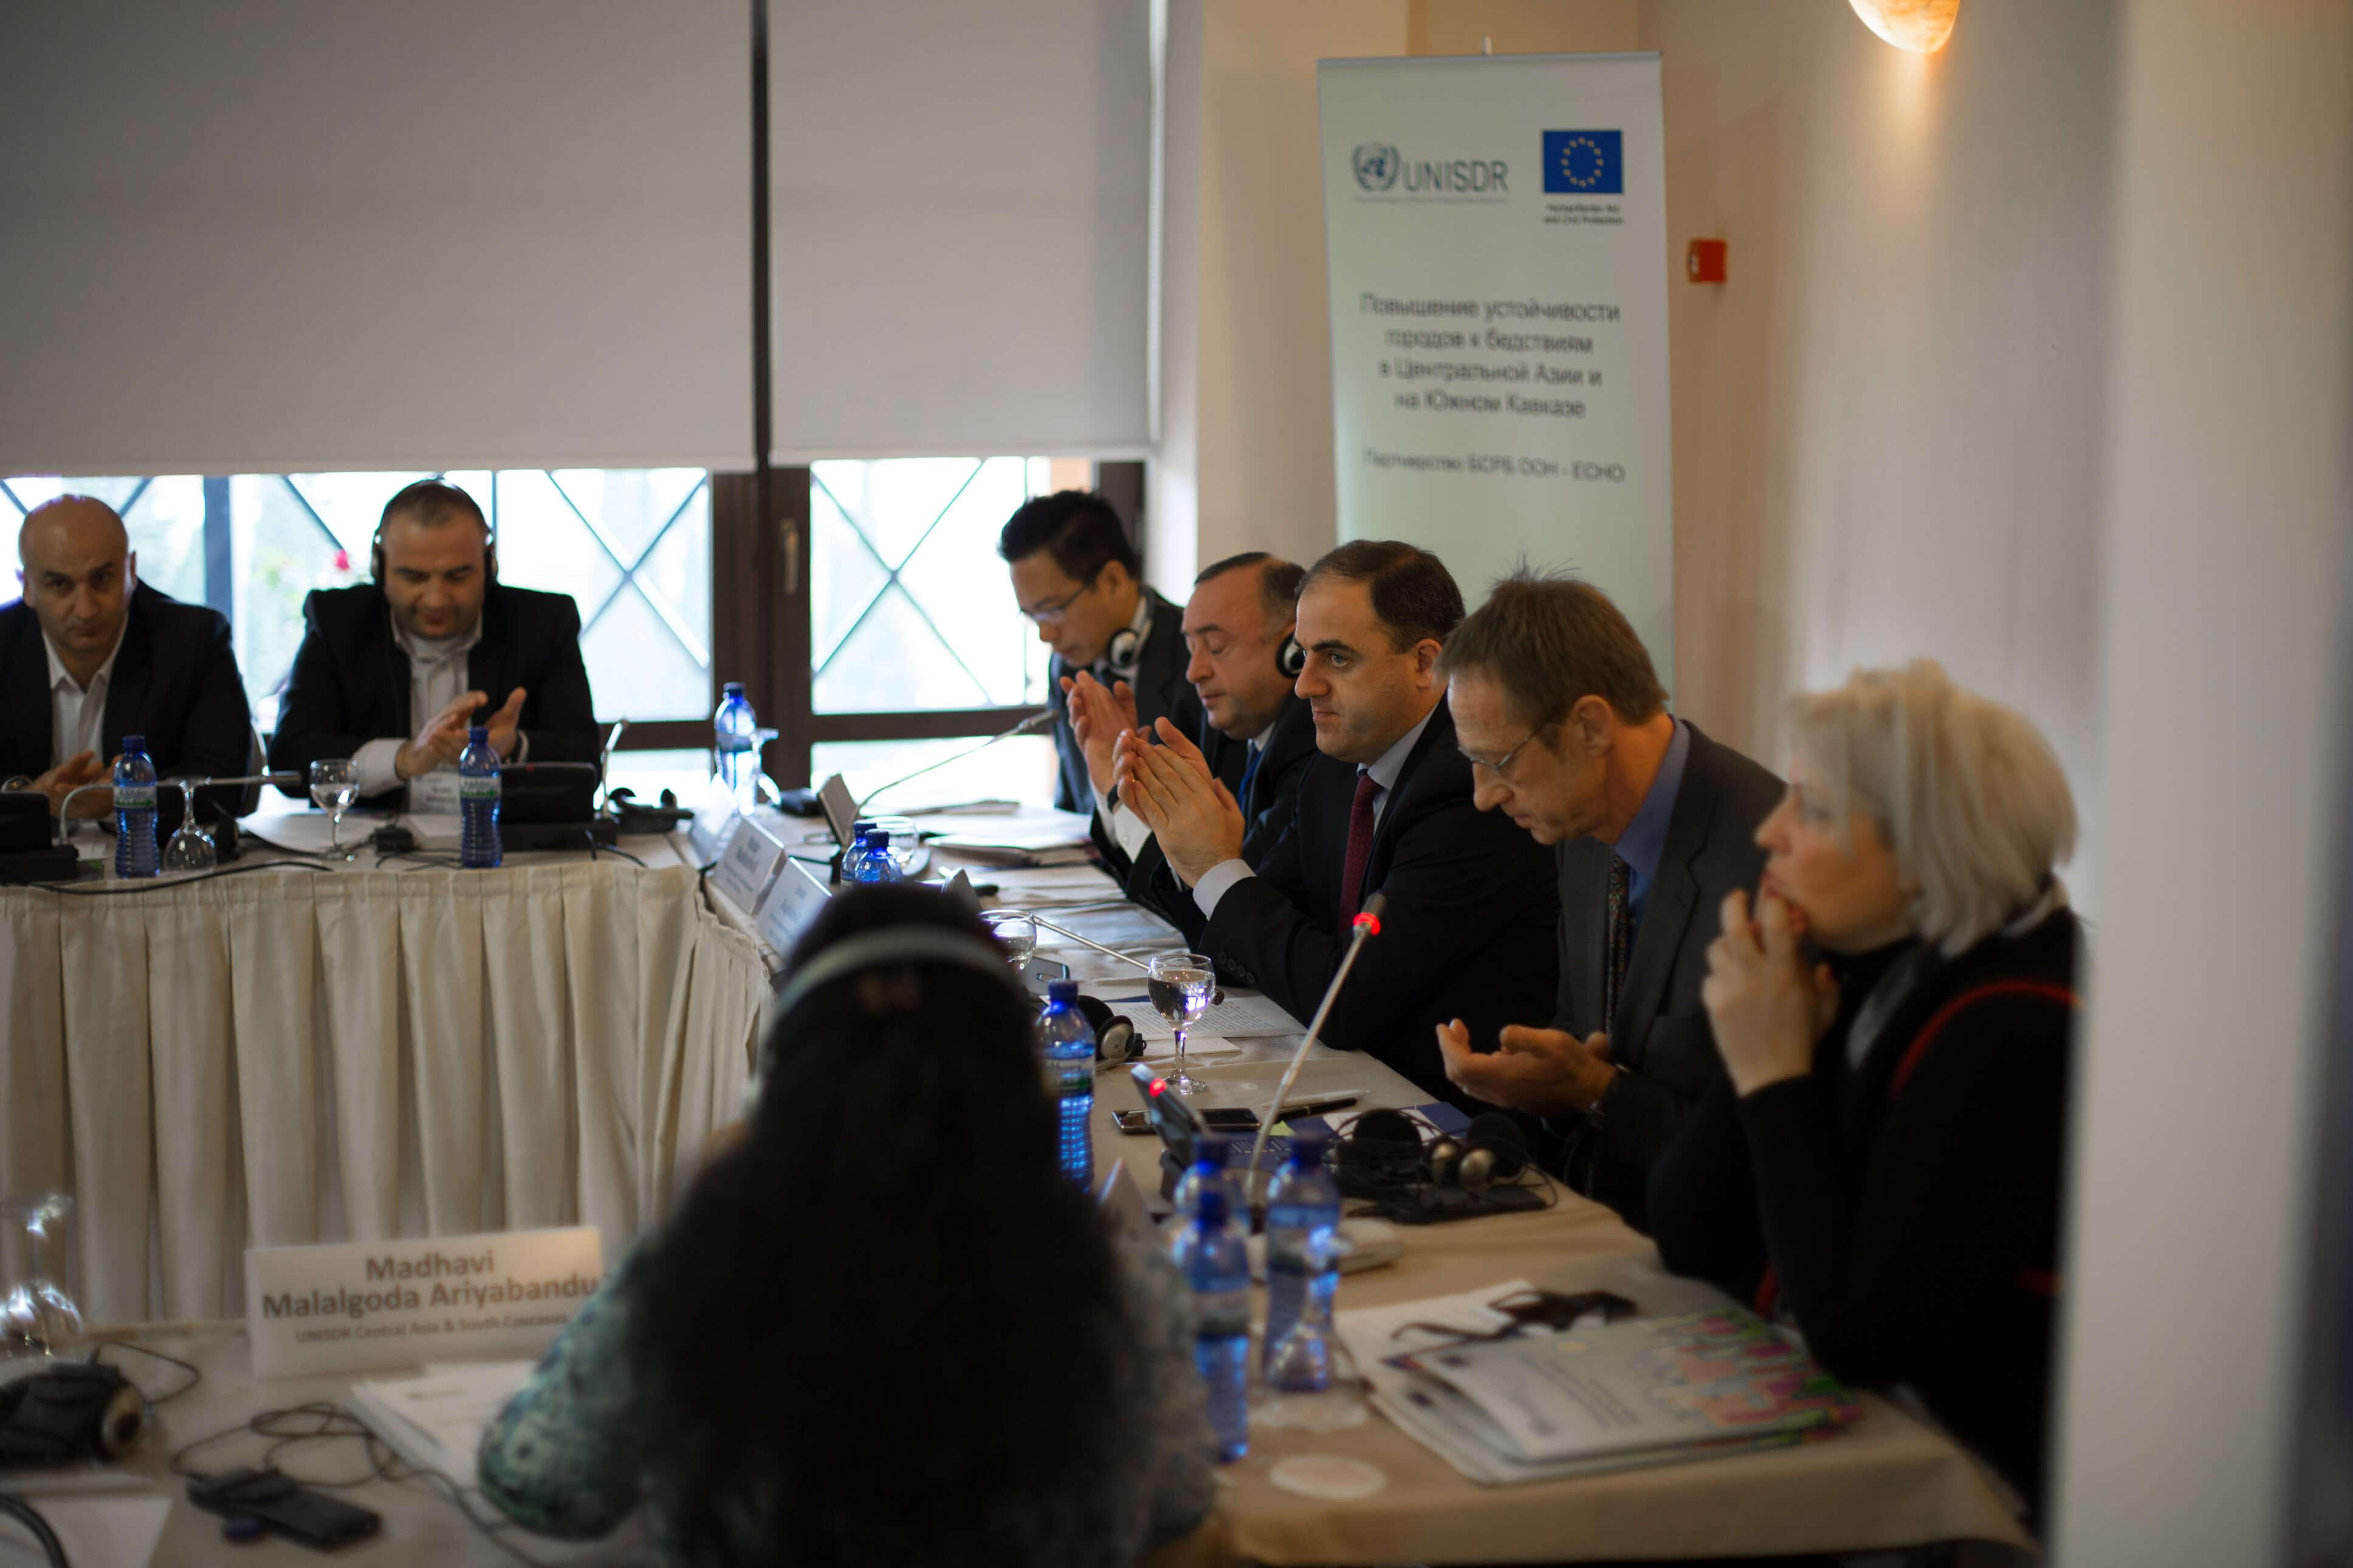 Workshop on the Resilient Cities Project in Central Asia and South Caucasus, Tbilisi, Georgia, 11 November 2015 Applause